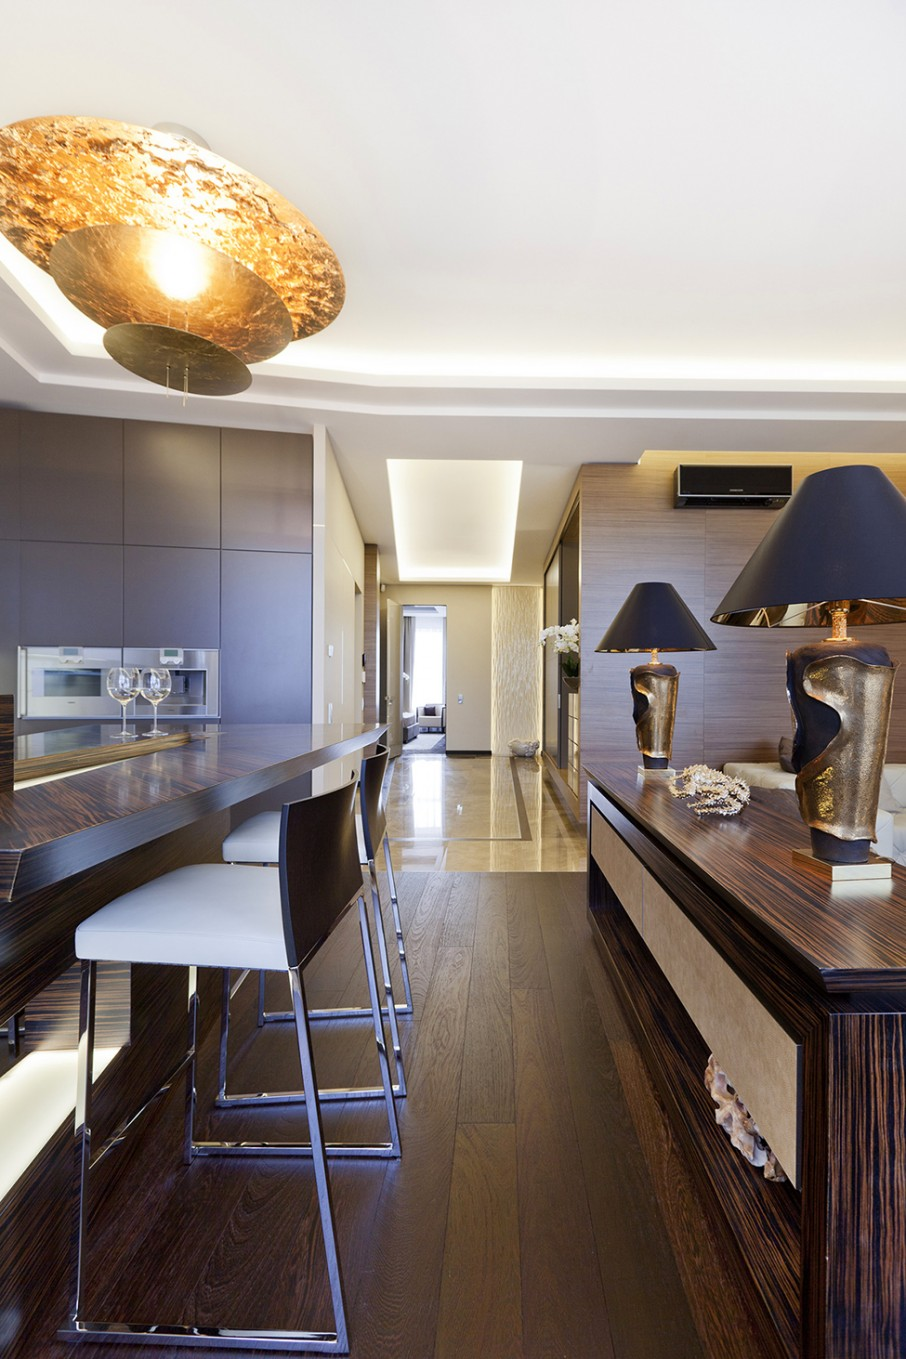 Bright Kitchen Interior Natural Nuance Extravagant Luxurious Interior Decoration Brings Warm And Cozy Nuance